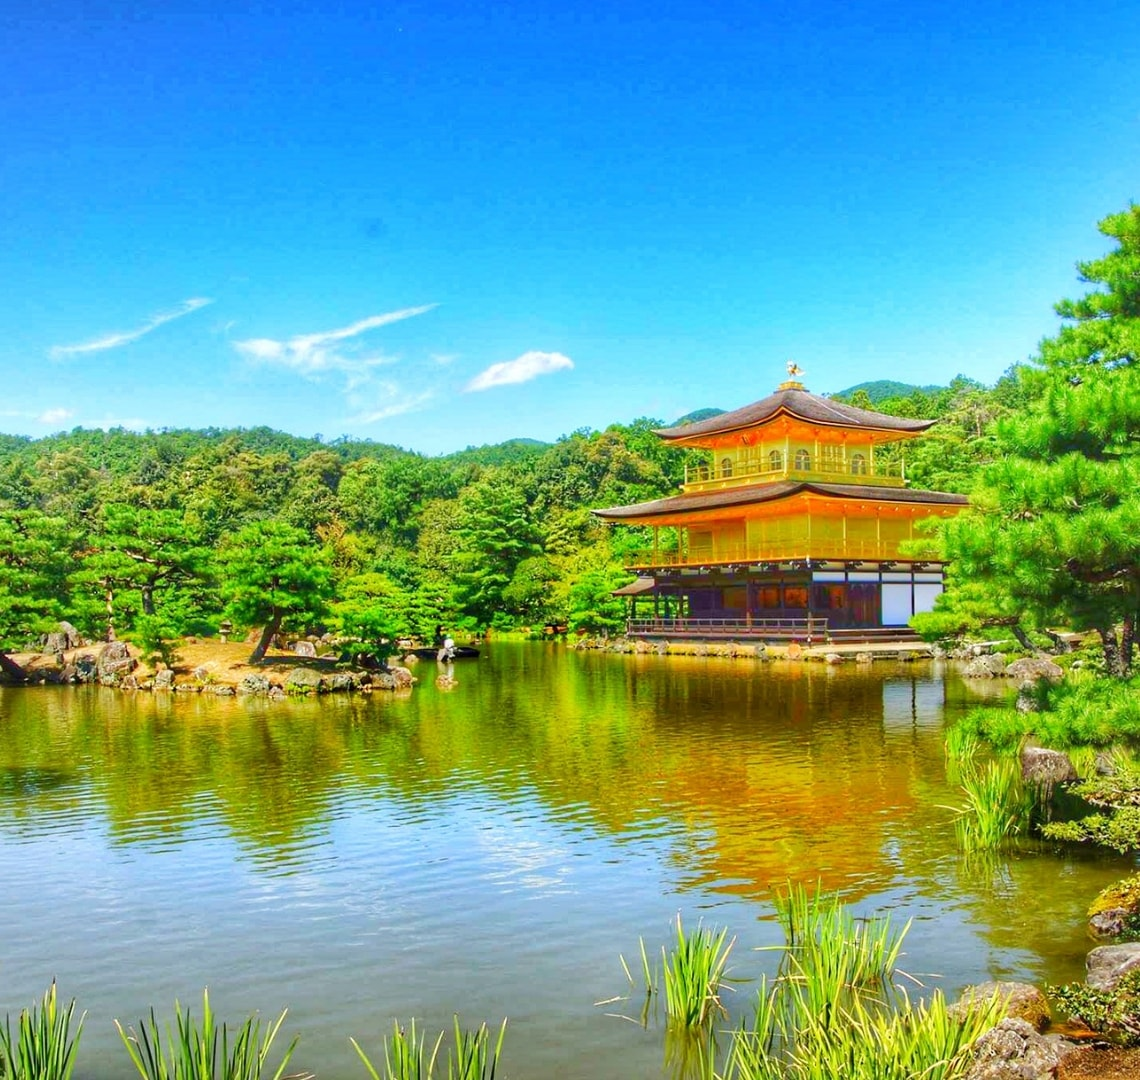 Best family holiday destinations - Japanese temple right next to a lake on a beautiful day